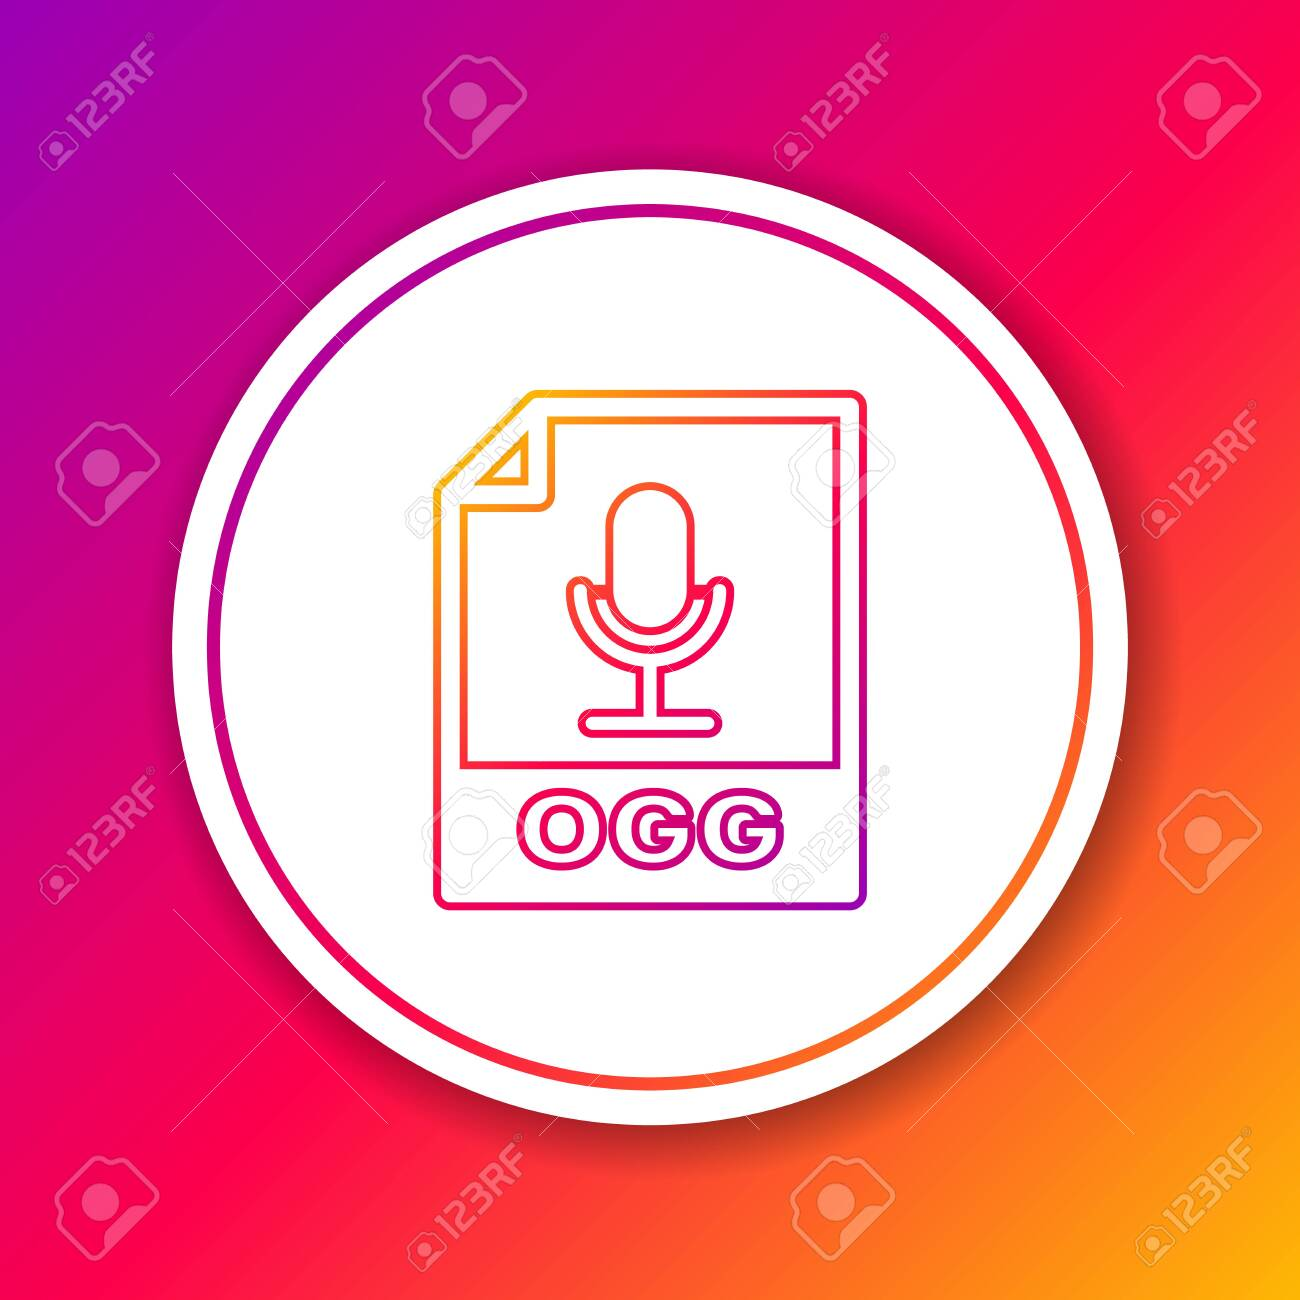 Color OGG file document icon  Download ogg button line icon isolated